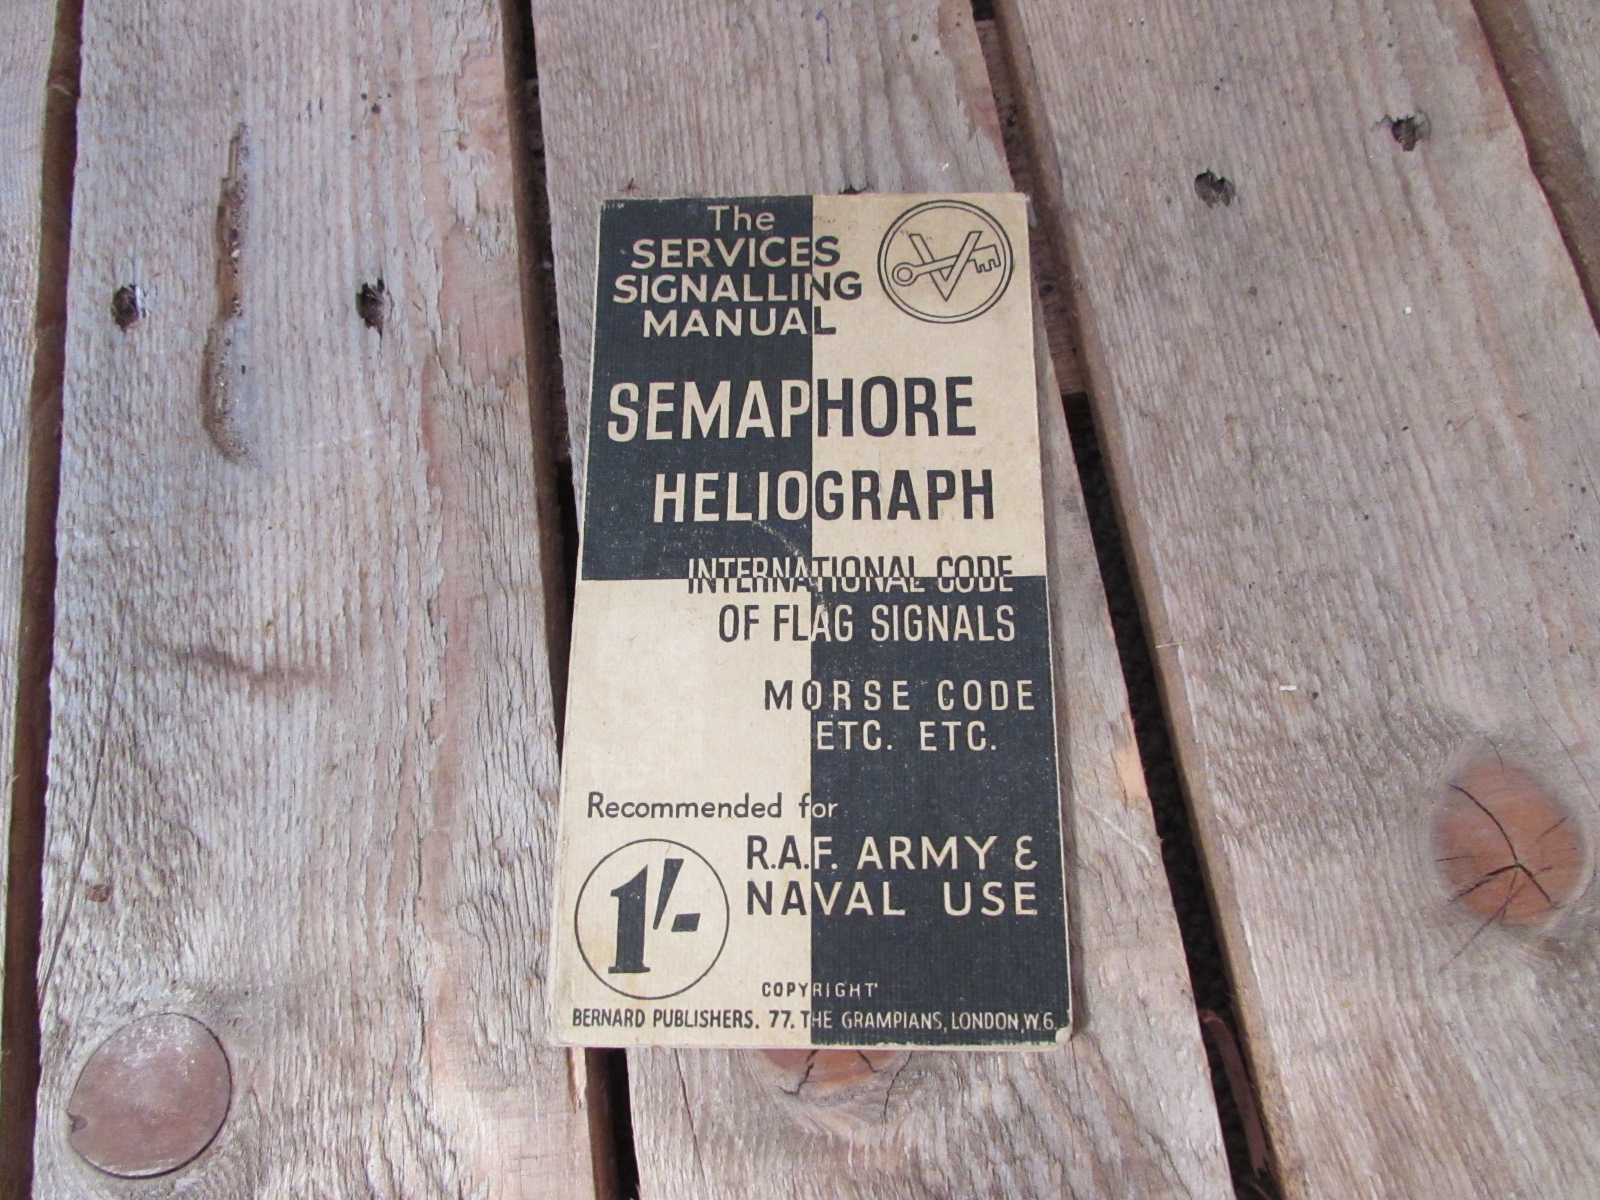 WWI Armed forces semaphore and heliograph booklet